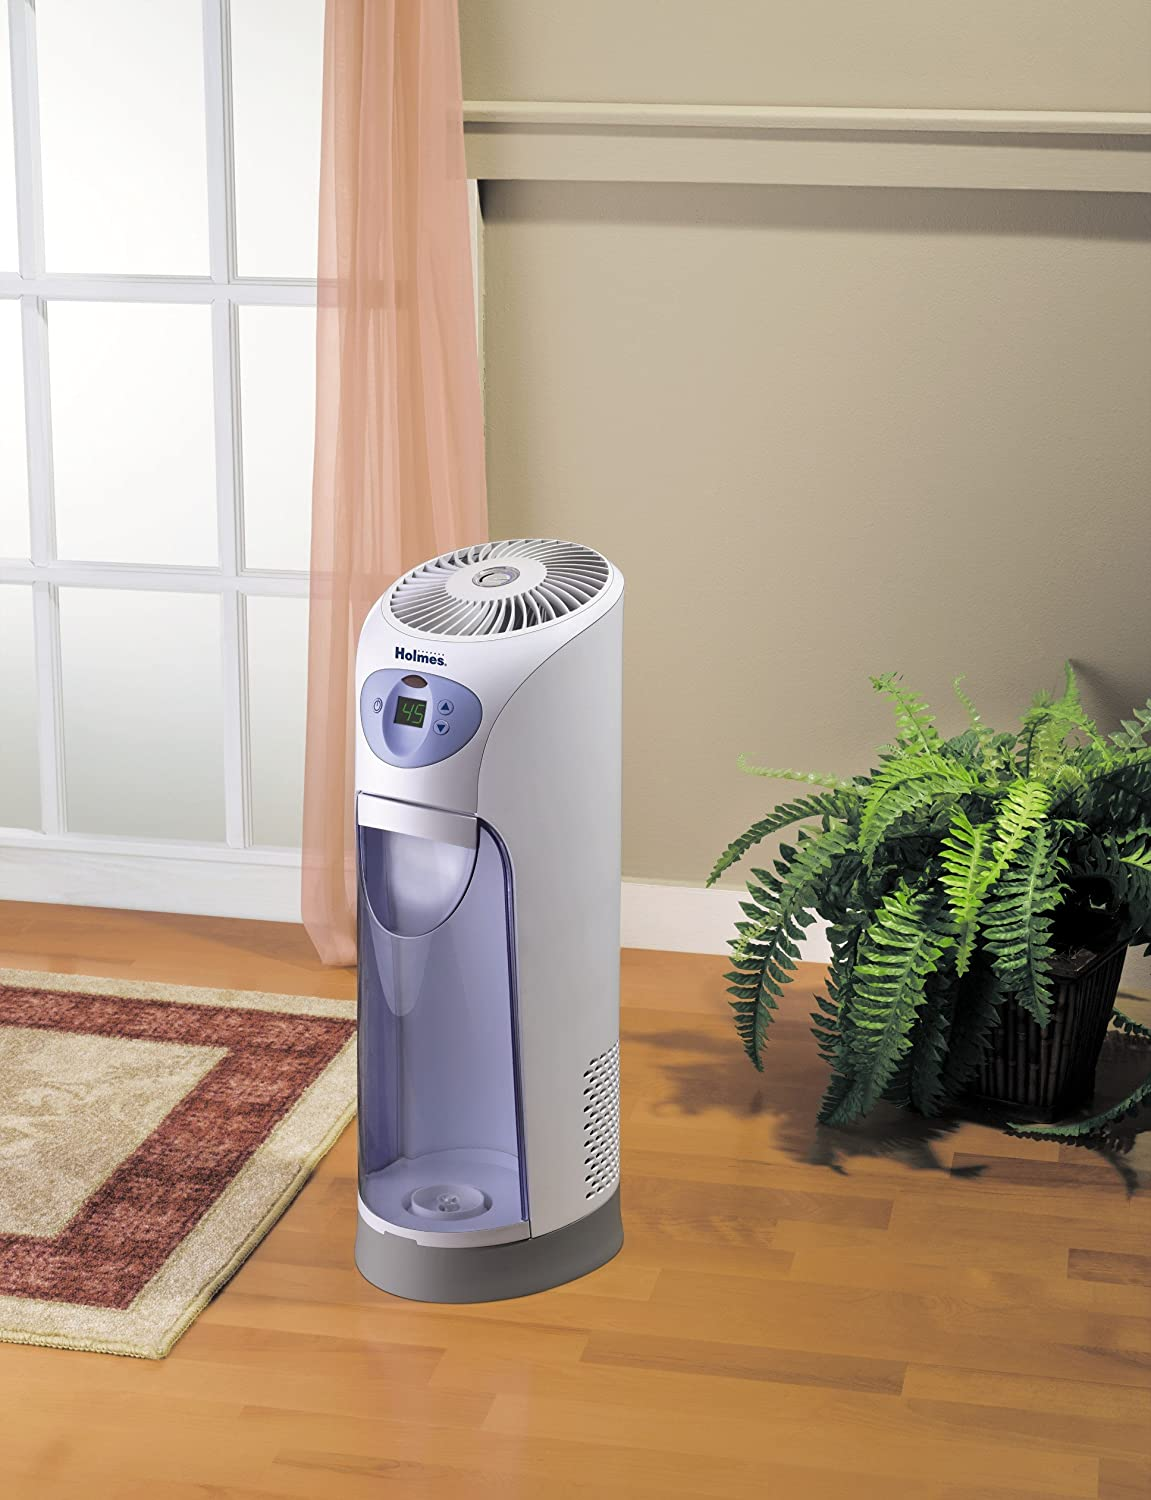 Details about Holmes Cool Mist Tower Humidifier HM630 NU New Free  #936738